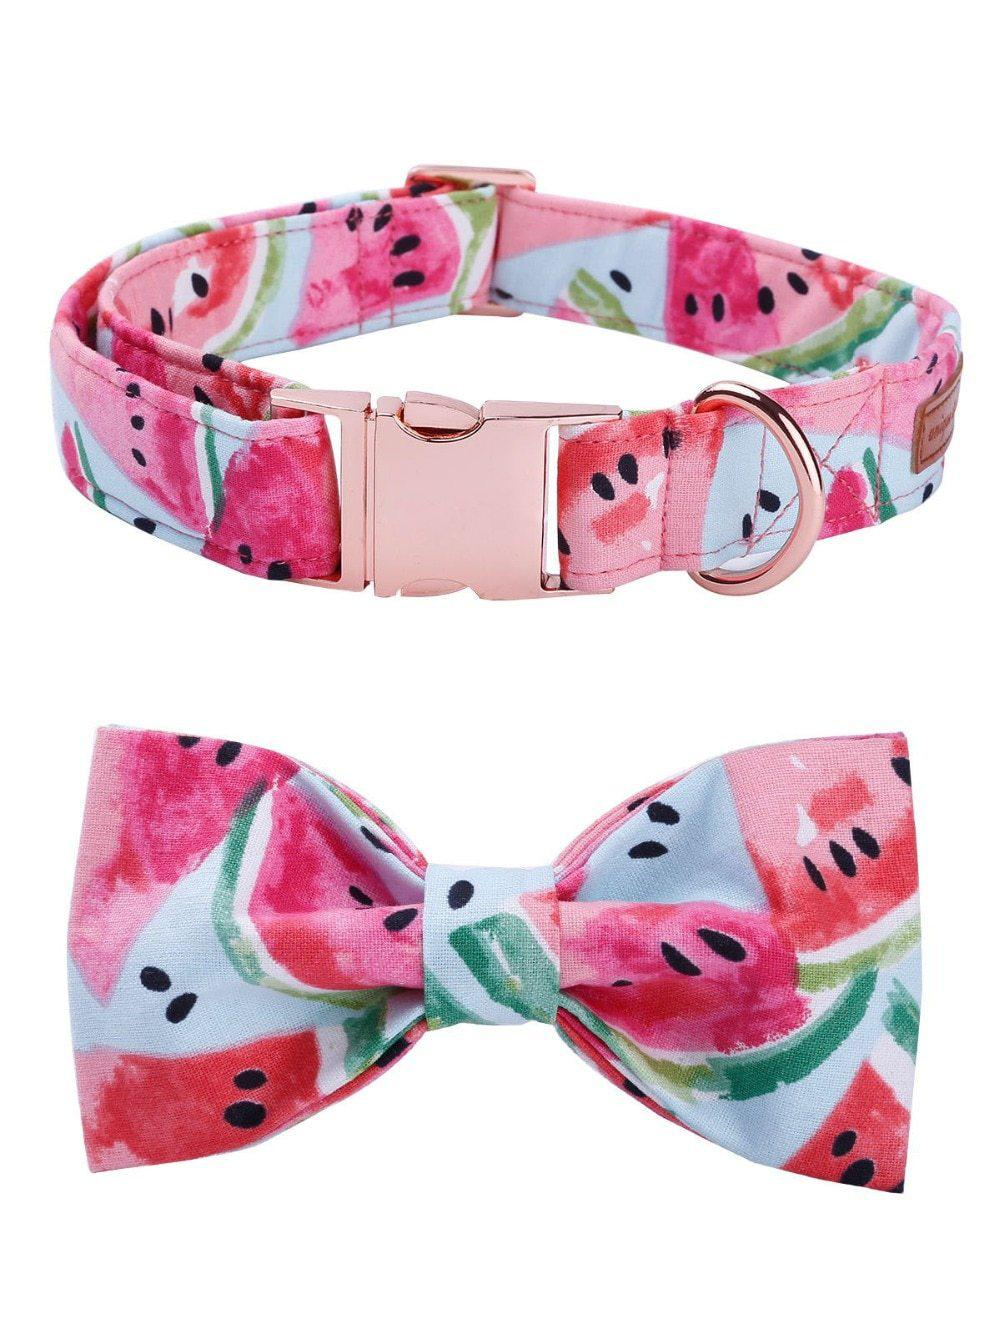 Watermelon Pink Cotton Fabric Dog Collar